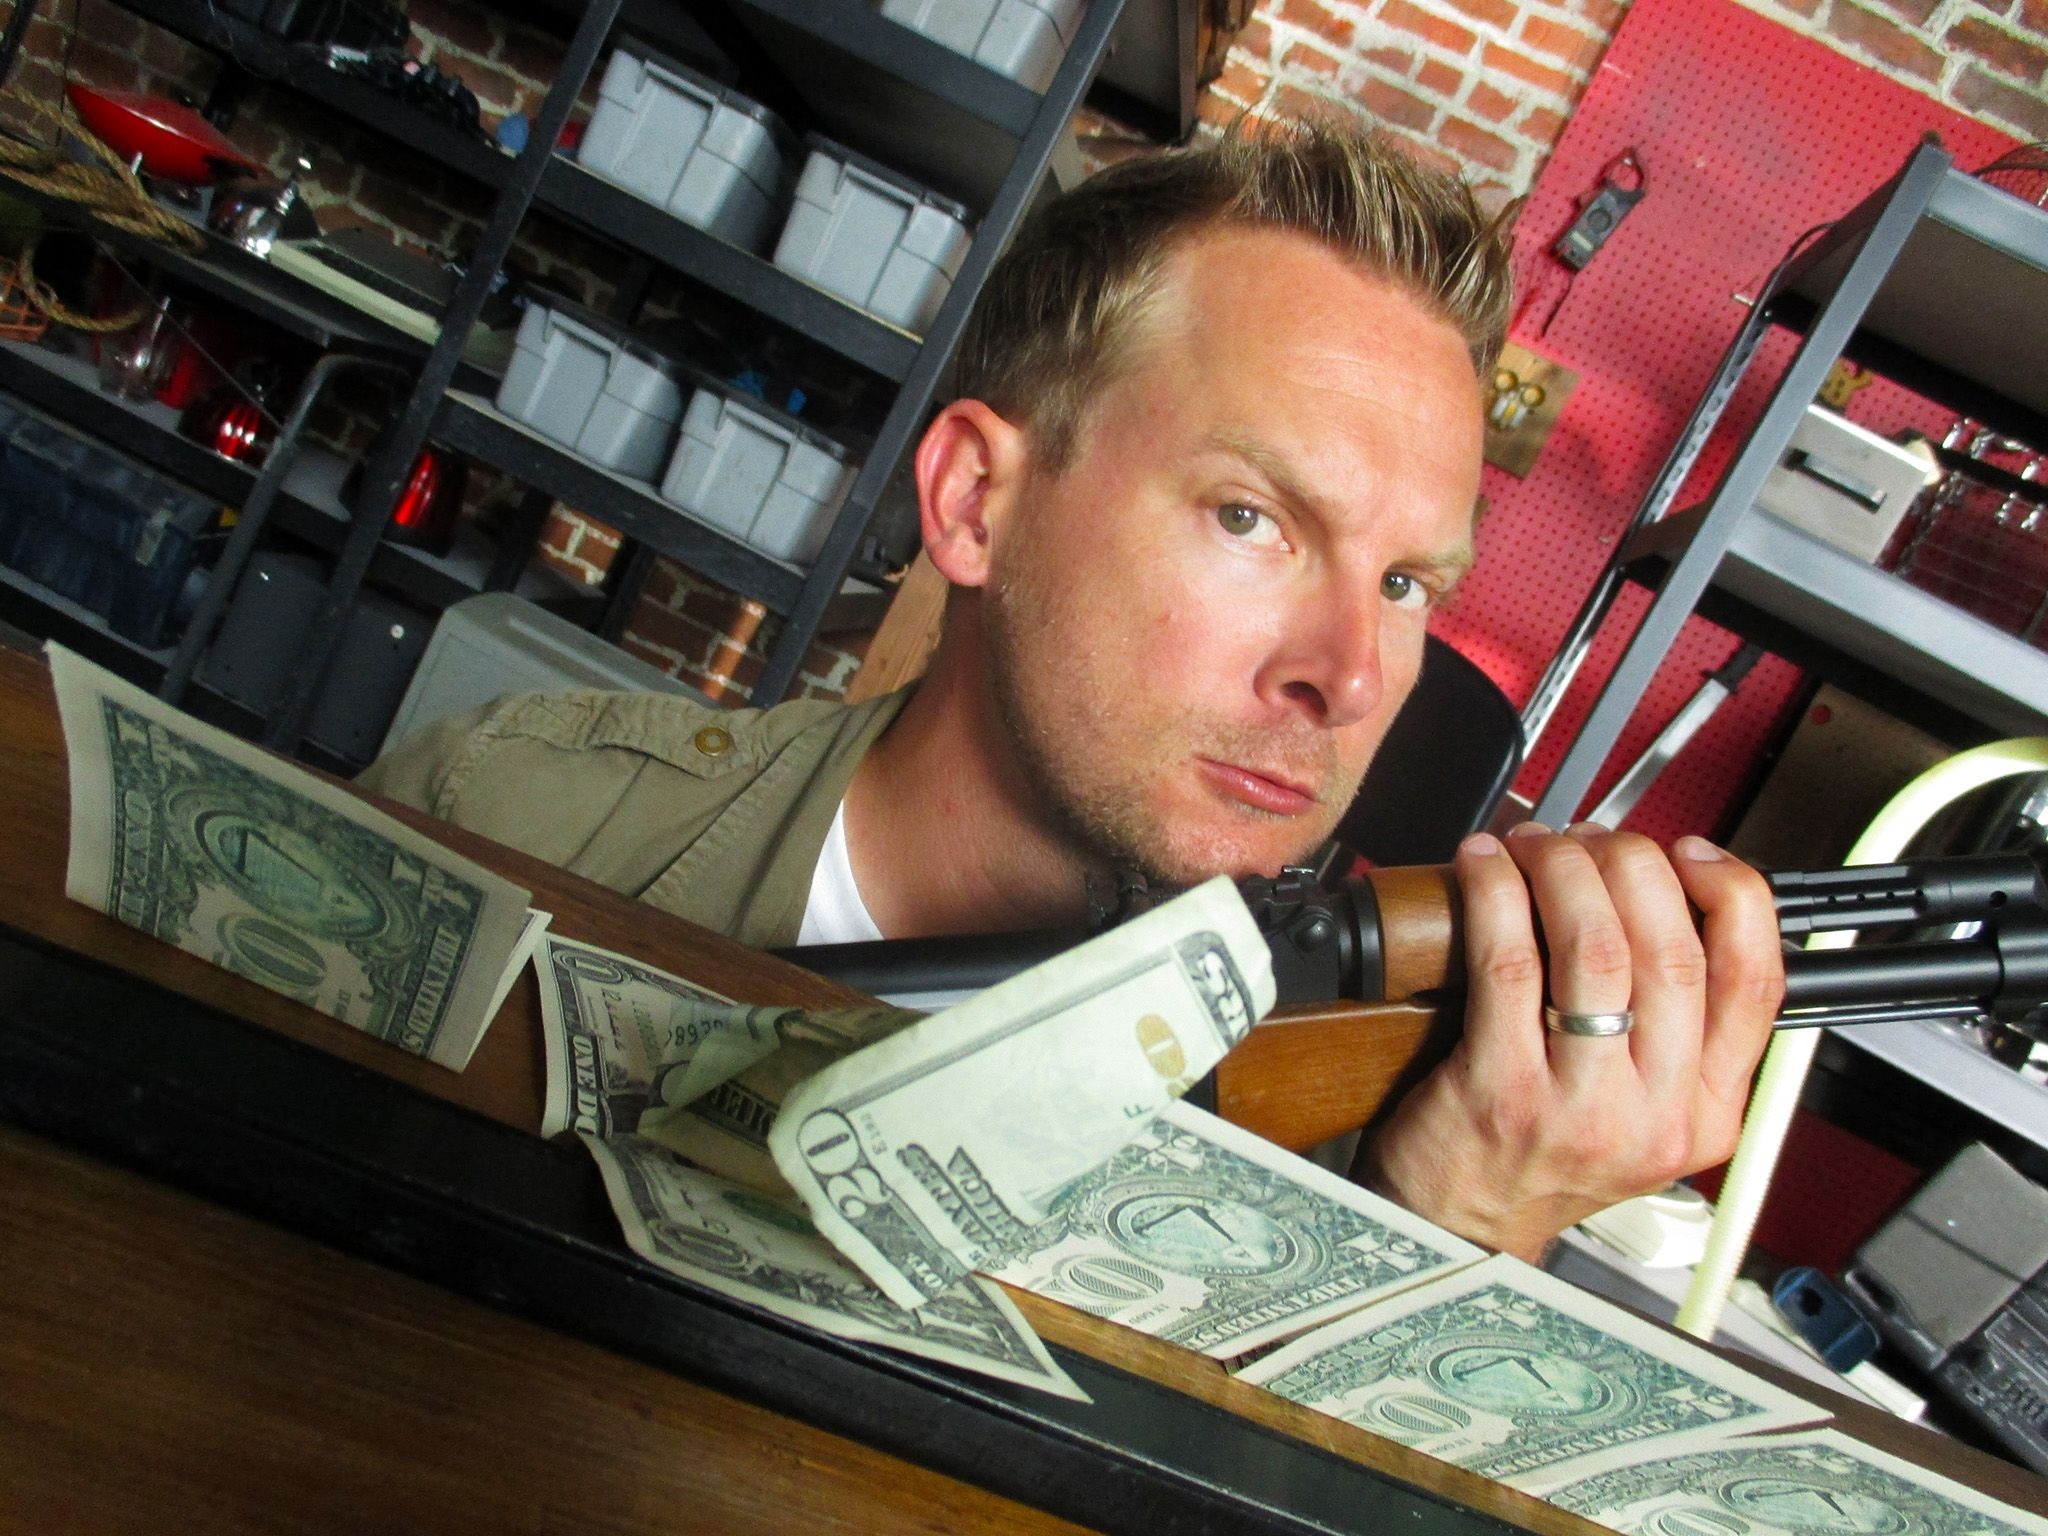 Los Angeles, CA.: In the workshop, Brian poses with a rifle next to a line of bills and a... [Photo of the day - آوریل 2015]